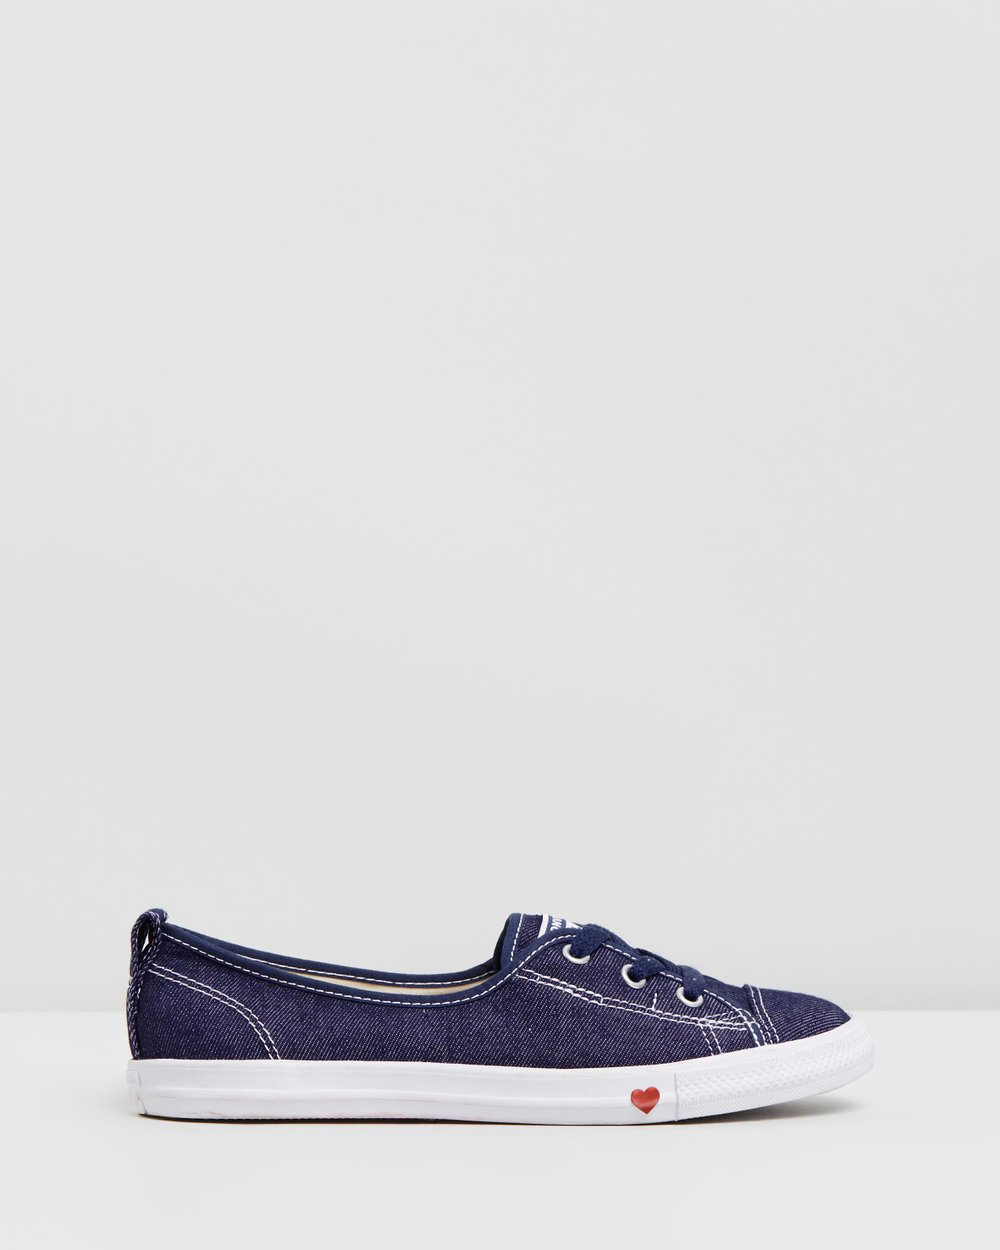 feaf6a921a56 Chuck Taylor All Star Ballet Lace Slip-On - Women s by Converse Online